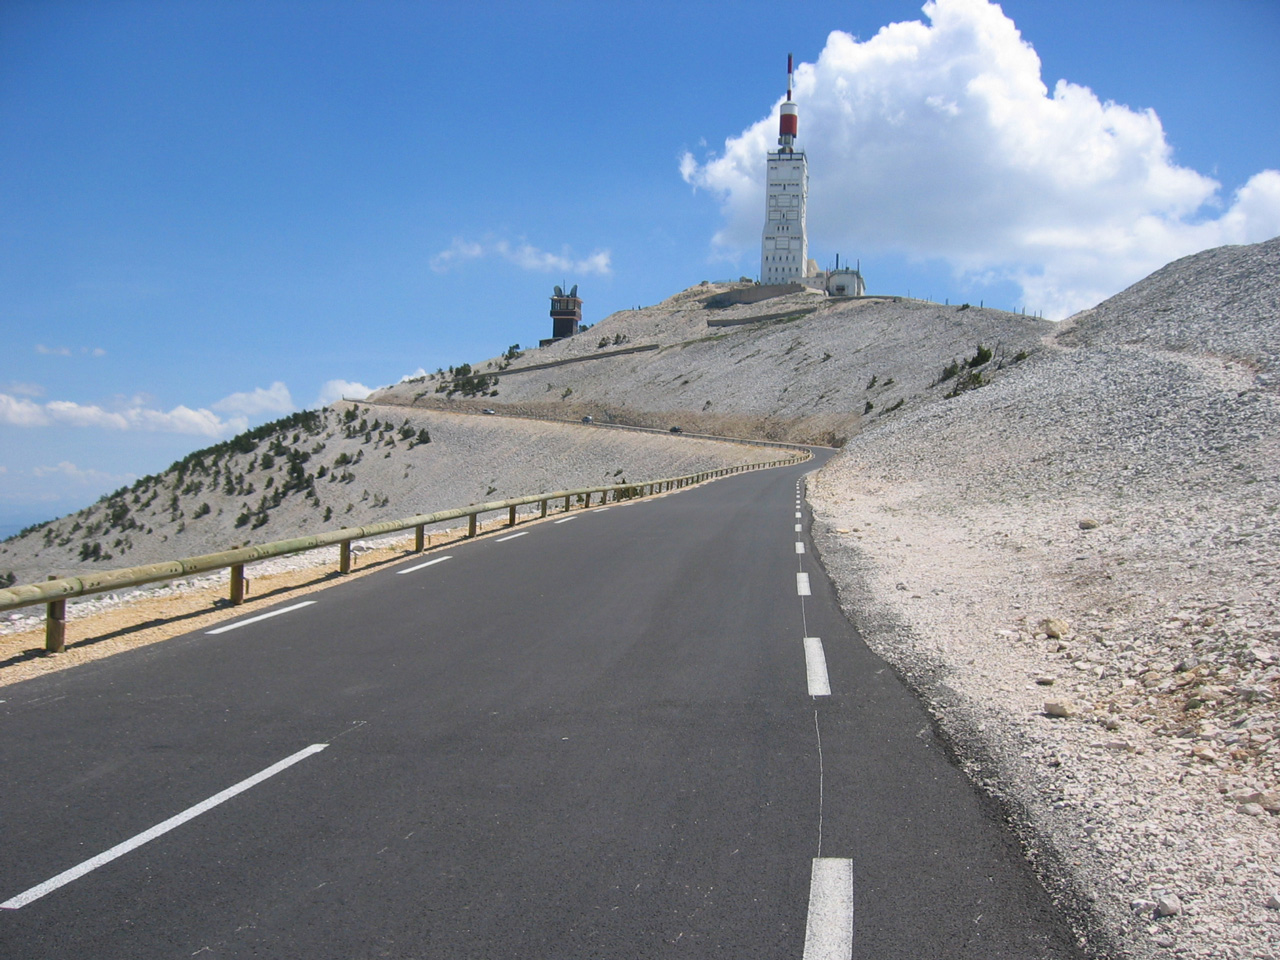 petrarchs ascent of mount ventoux Thursday's stage of the tour de france, due to finish at the summit of mont ventoux, will end 6km short at chalet reynard due to high winds.